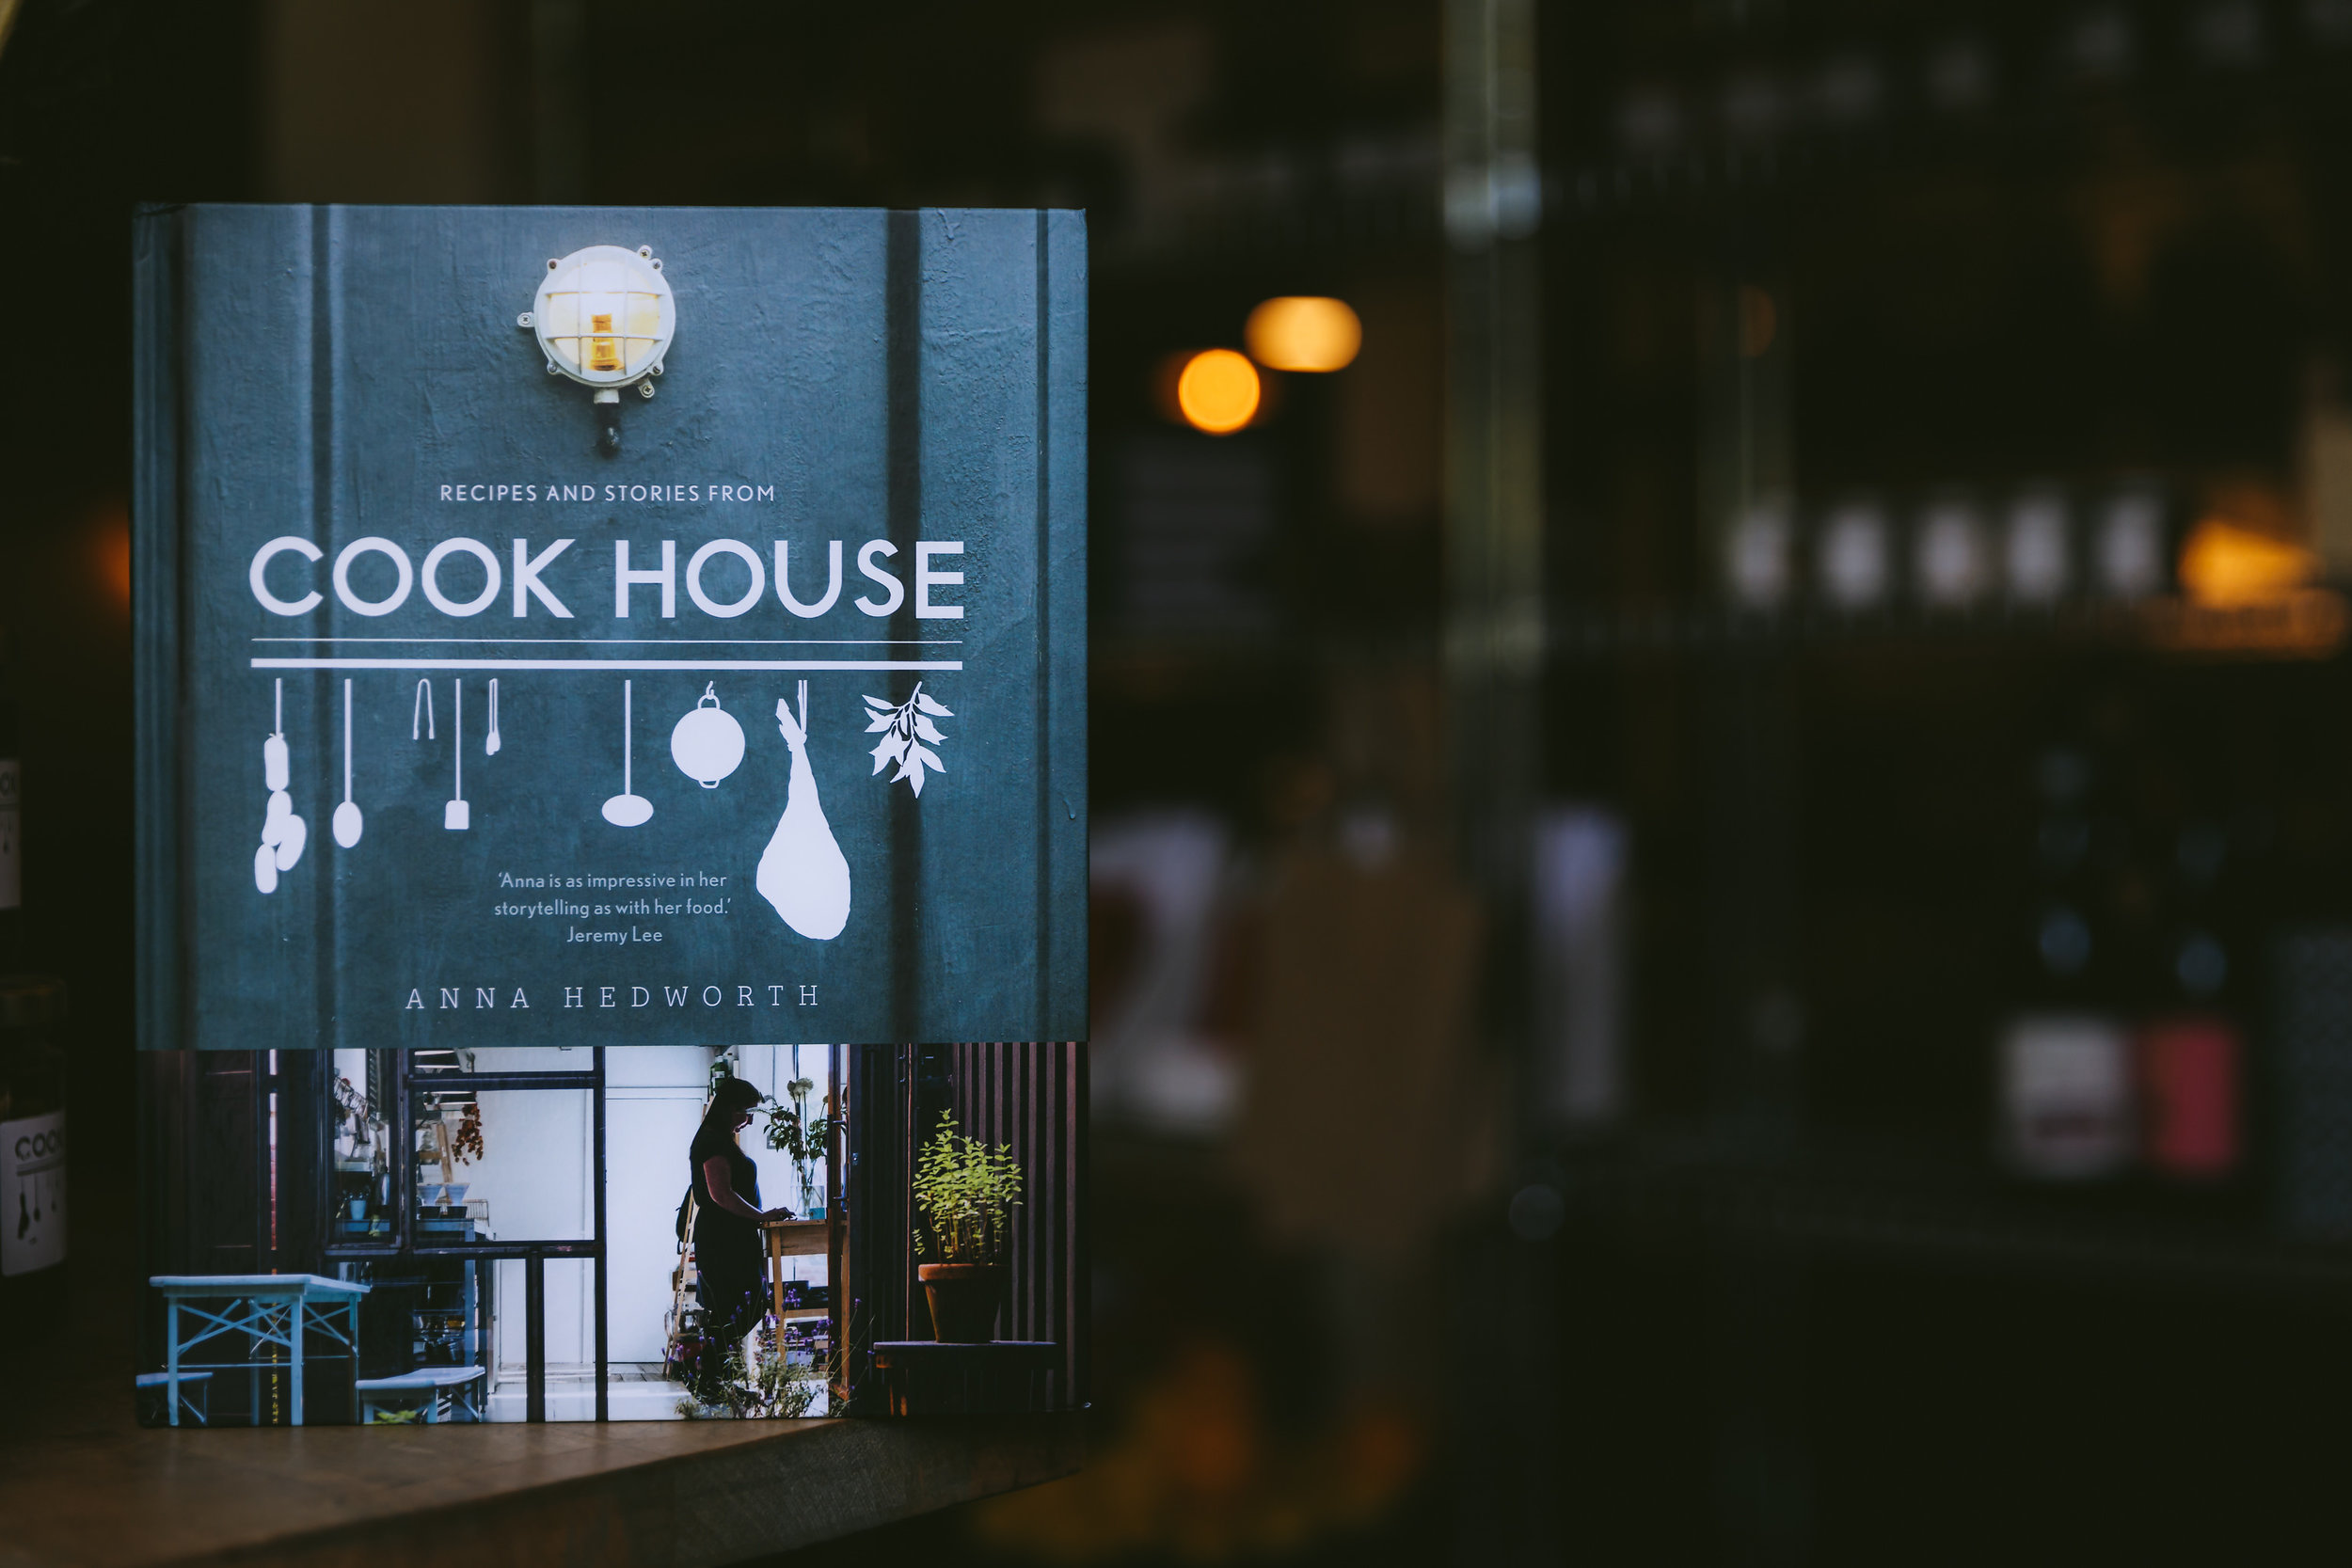 RECIPES & STORIES FROM COOK HOUSE - Have you ever dreamed of quitting your job and starting a business of your own, cooking delicious food to make people smile? Anna Hedworth did. She opened Cook House: an award-winning restaurant housed in two shipping containers.Cook House is a book filled with more than 100 delicious recipes as well as a story to inspire the millions of others who dream of jumping ship.'Anna is as impressive in her storytelling as with her food' JEREMY LEEAvailable now fromAmazon | Blackwells | Waterstones | Hive